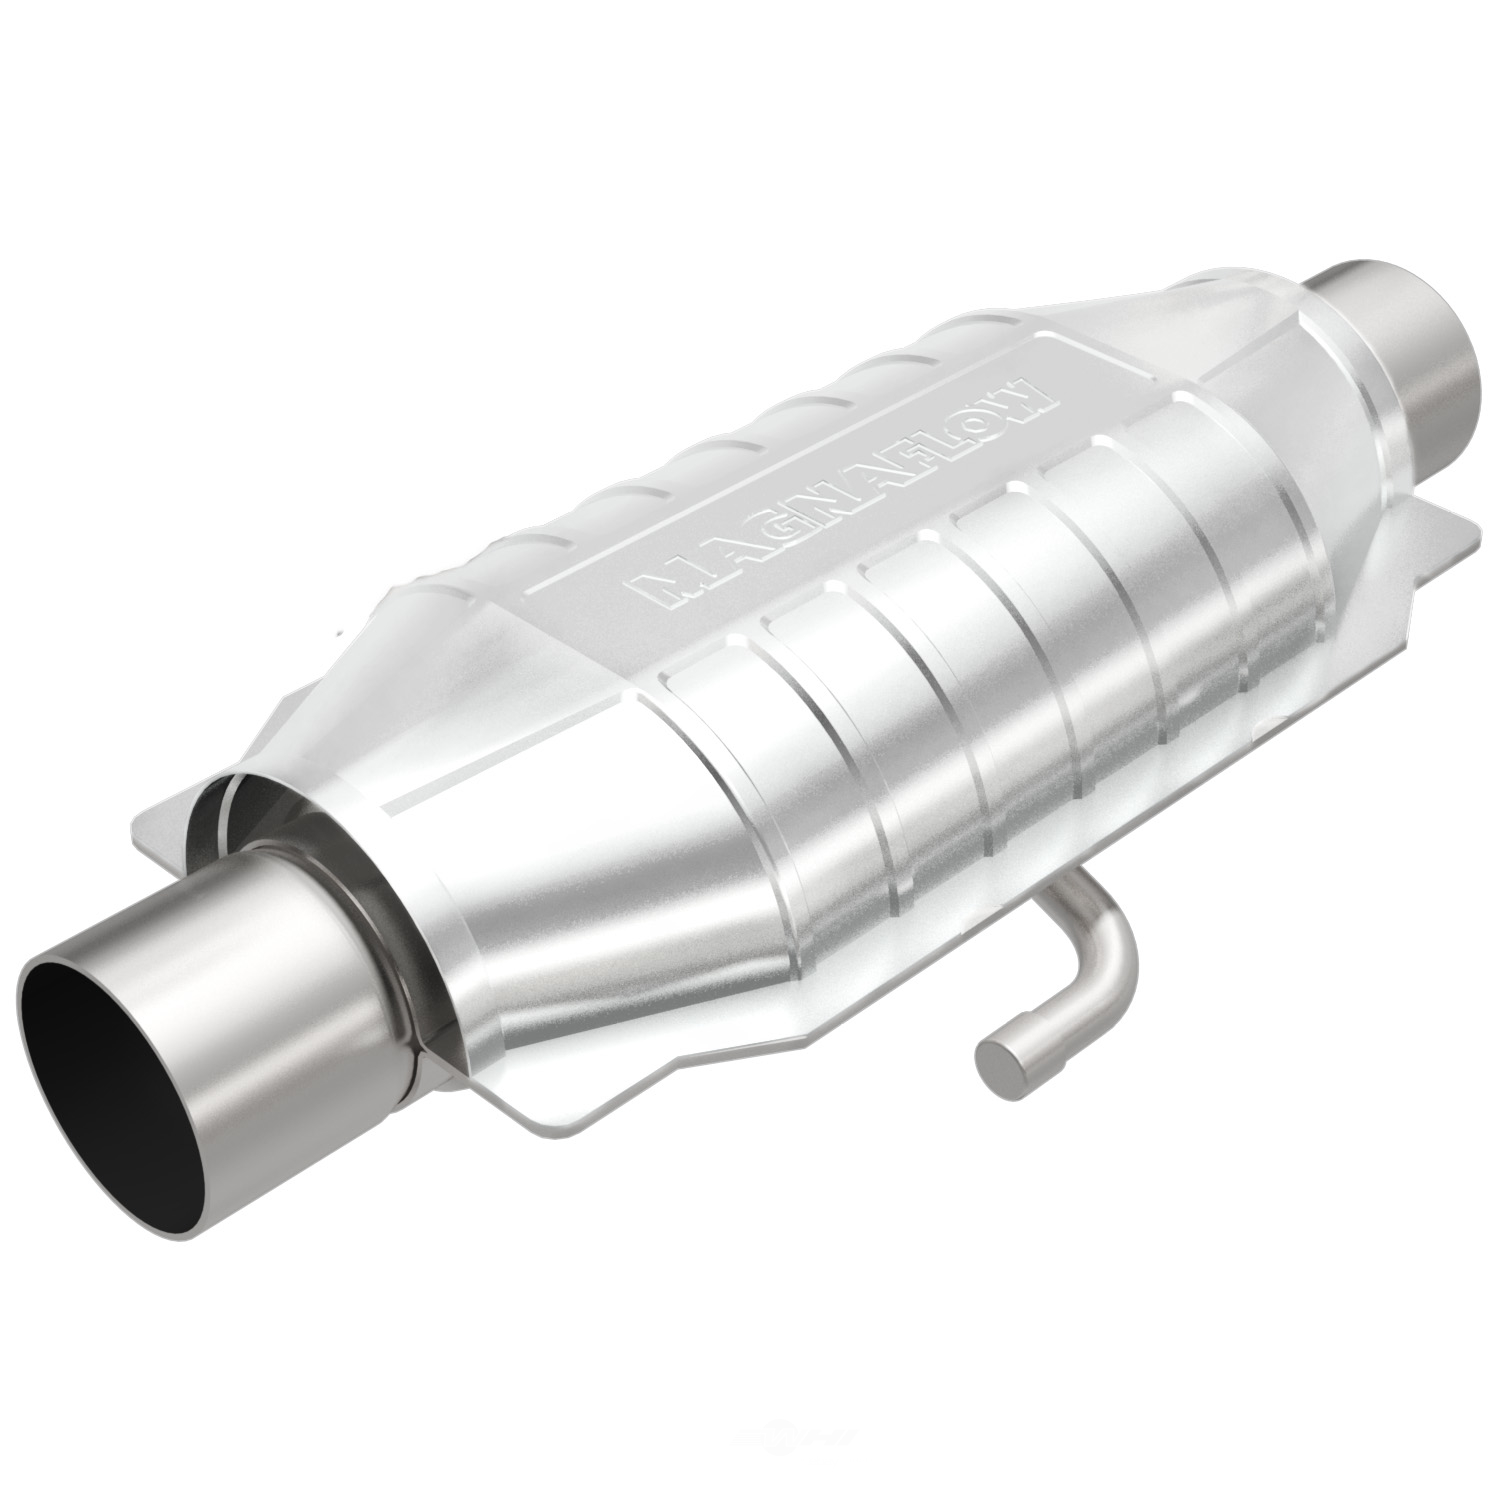 MAGNAFLOW CARB COMPLIANT CONVERTER - 2.25in. Universal California Pre-OBDII Catalytic Converter - MFC 338015